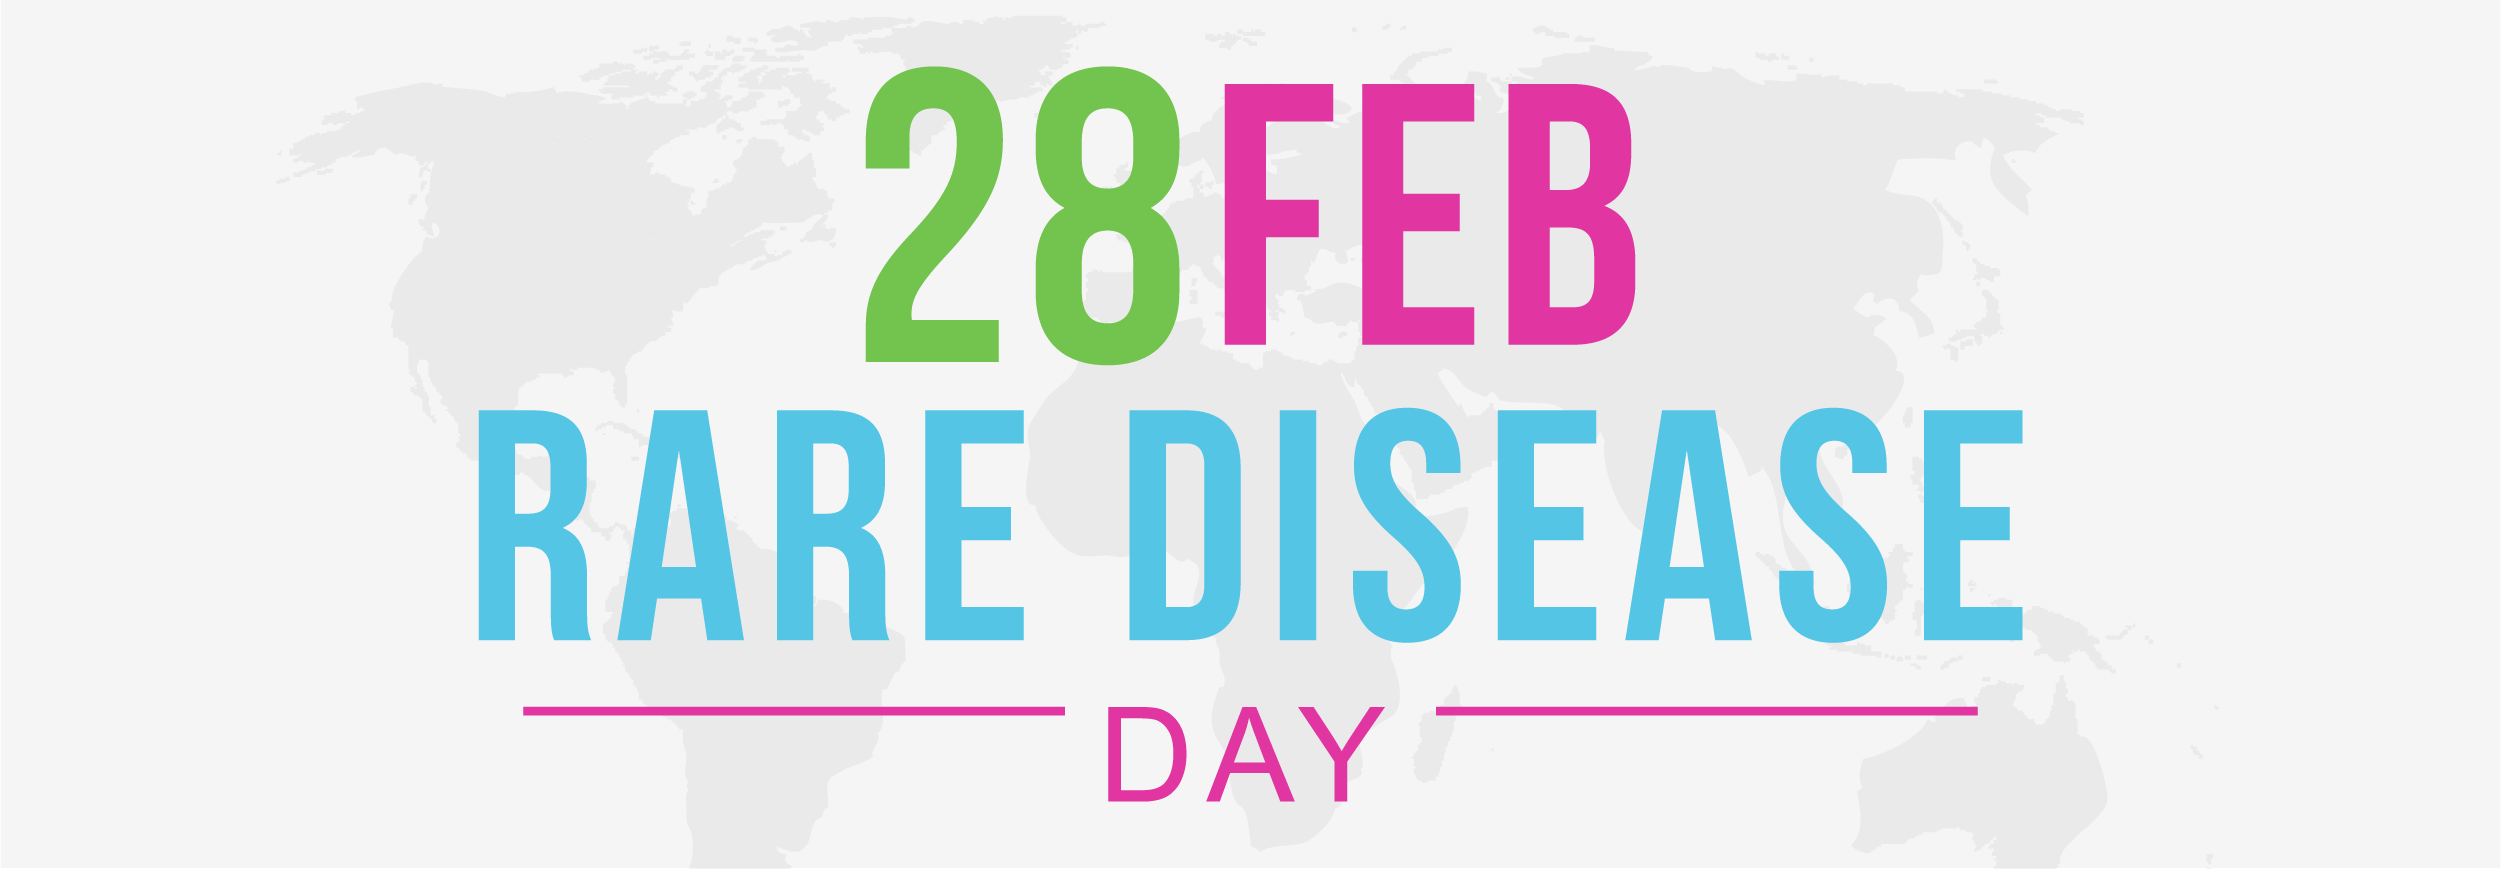 February 28 Rare Disease Day world wide